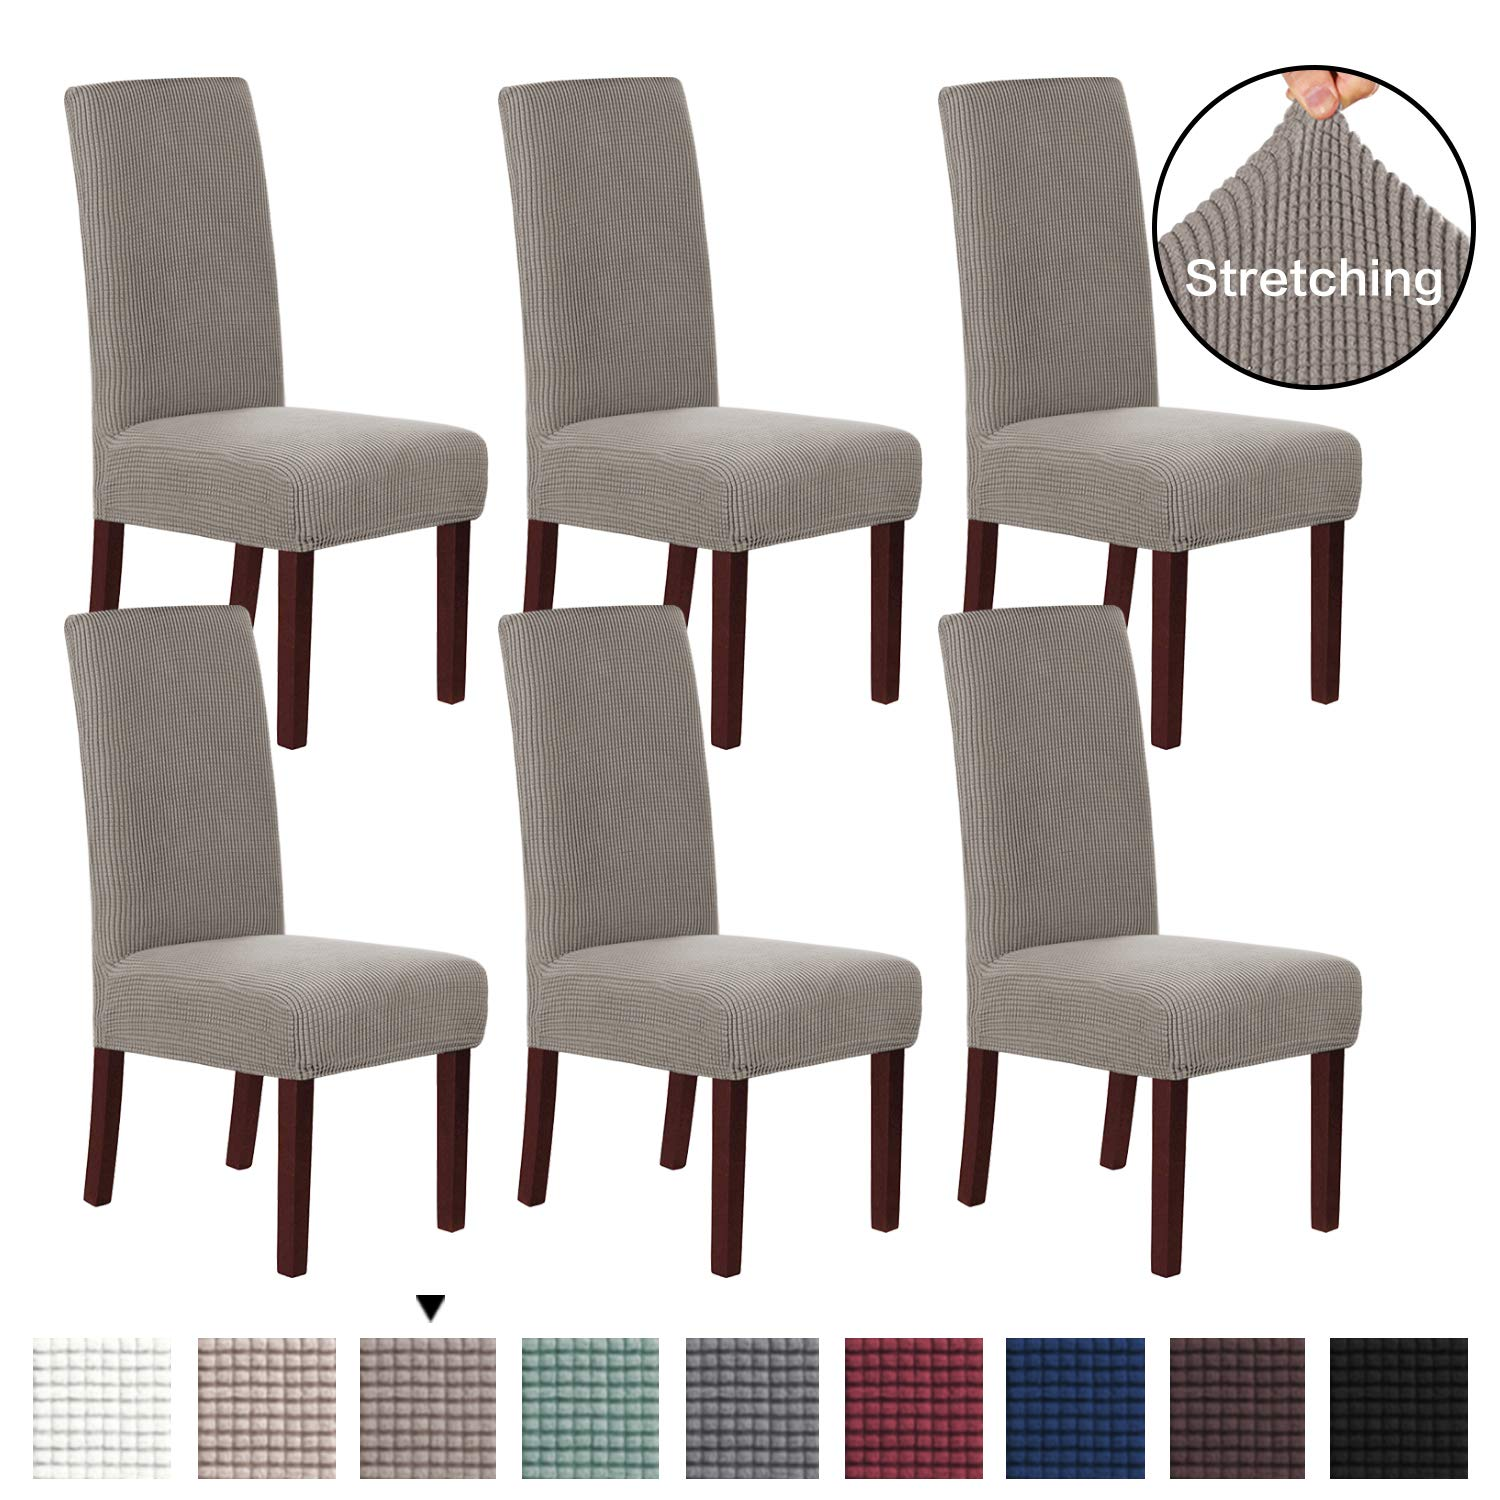 H.VERSAILTEX Stretch Removable Washable Chair Covers Solid Stretch Dining Room Chair Protector Home Decor Slip Resistant Spandex Dining Chair Protector Cover for Dining Room Set of 6, Taupe